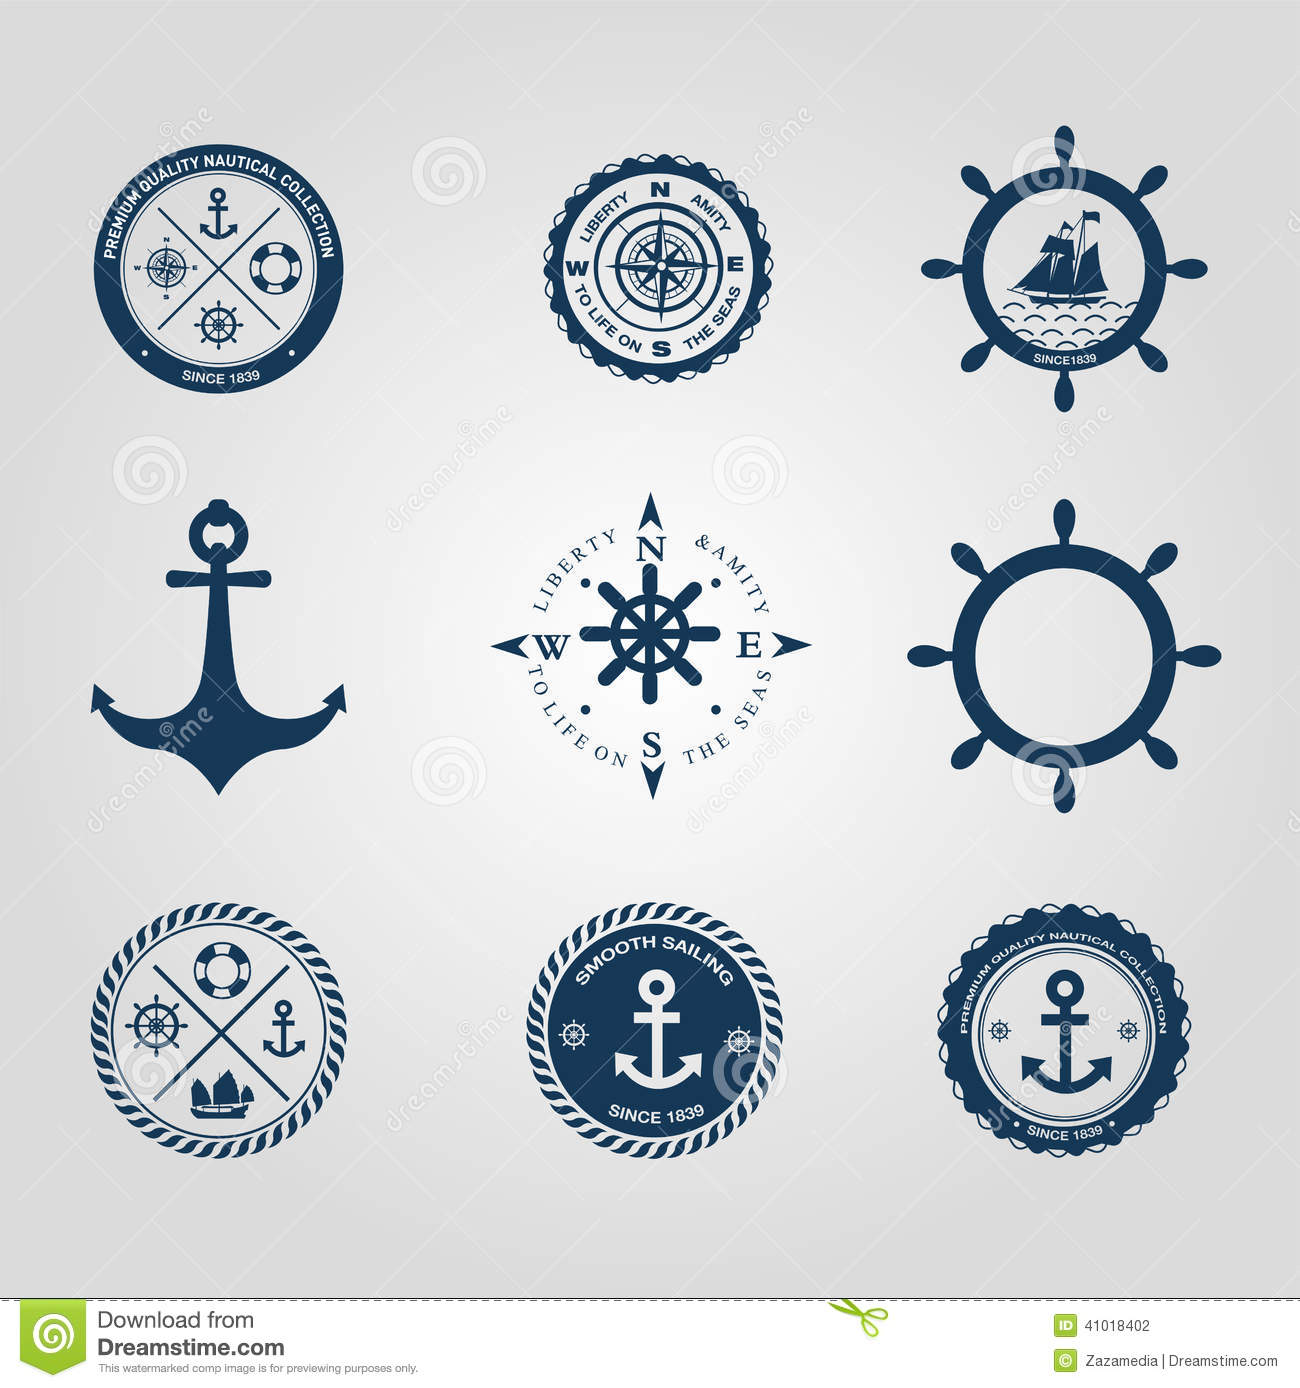 Stock Photography: Set of nautical labels icons logo symbol and design ...